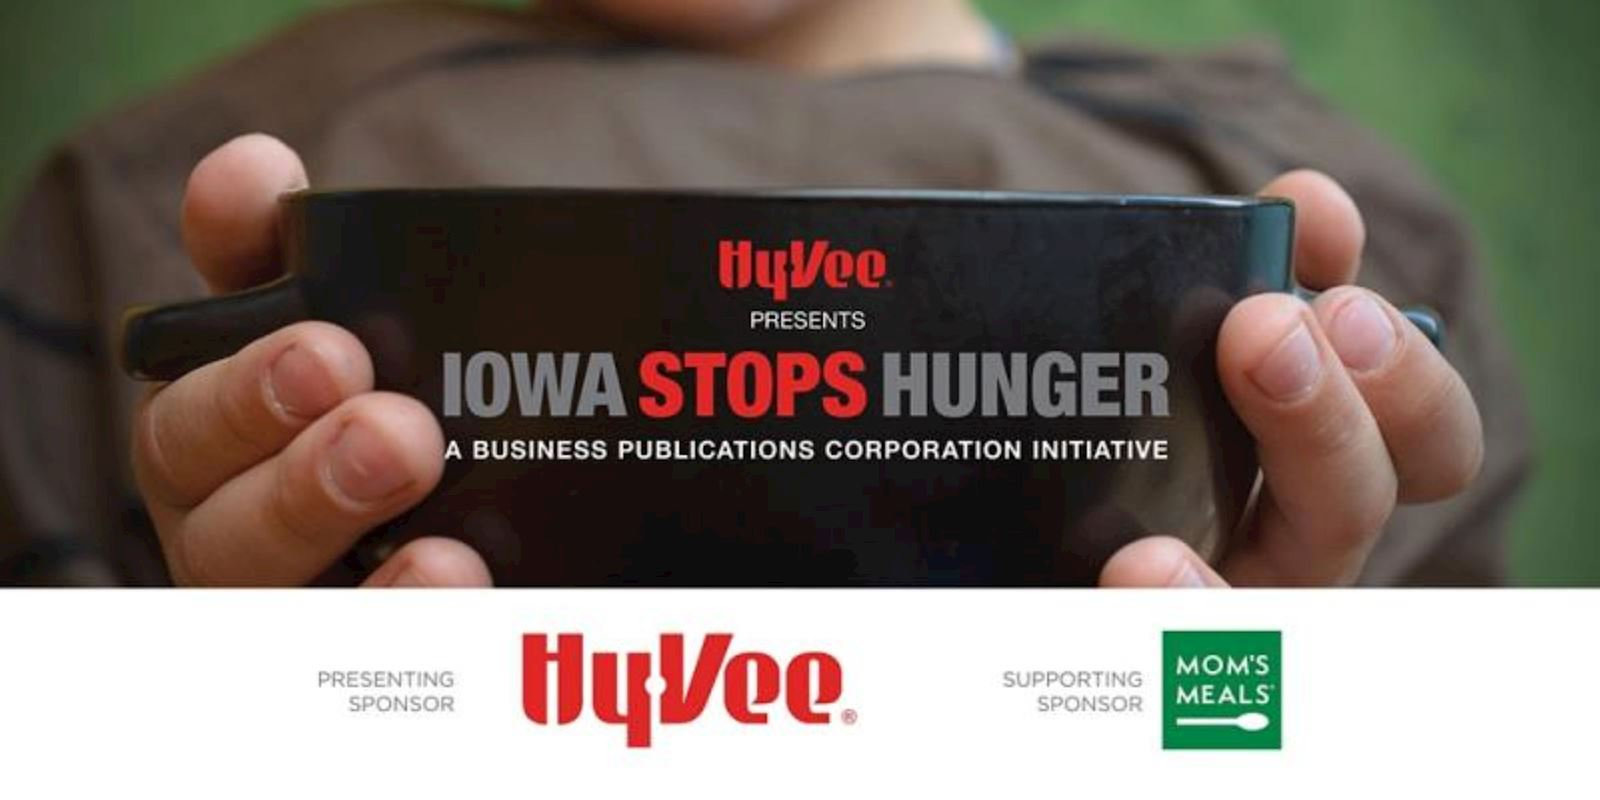 Iowa Stops Hunger